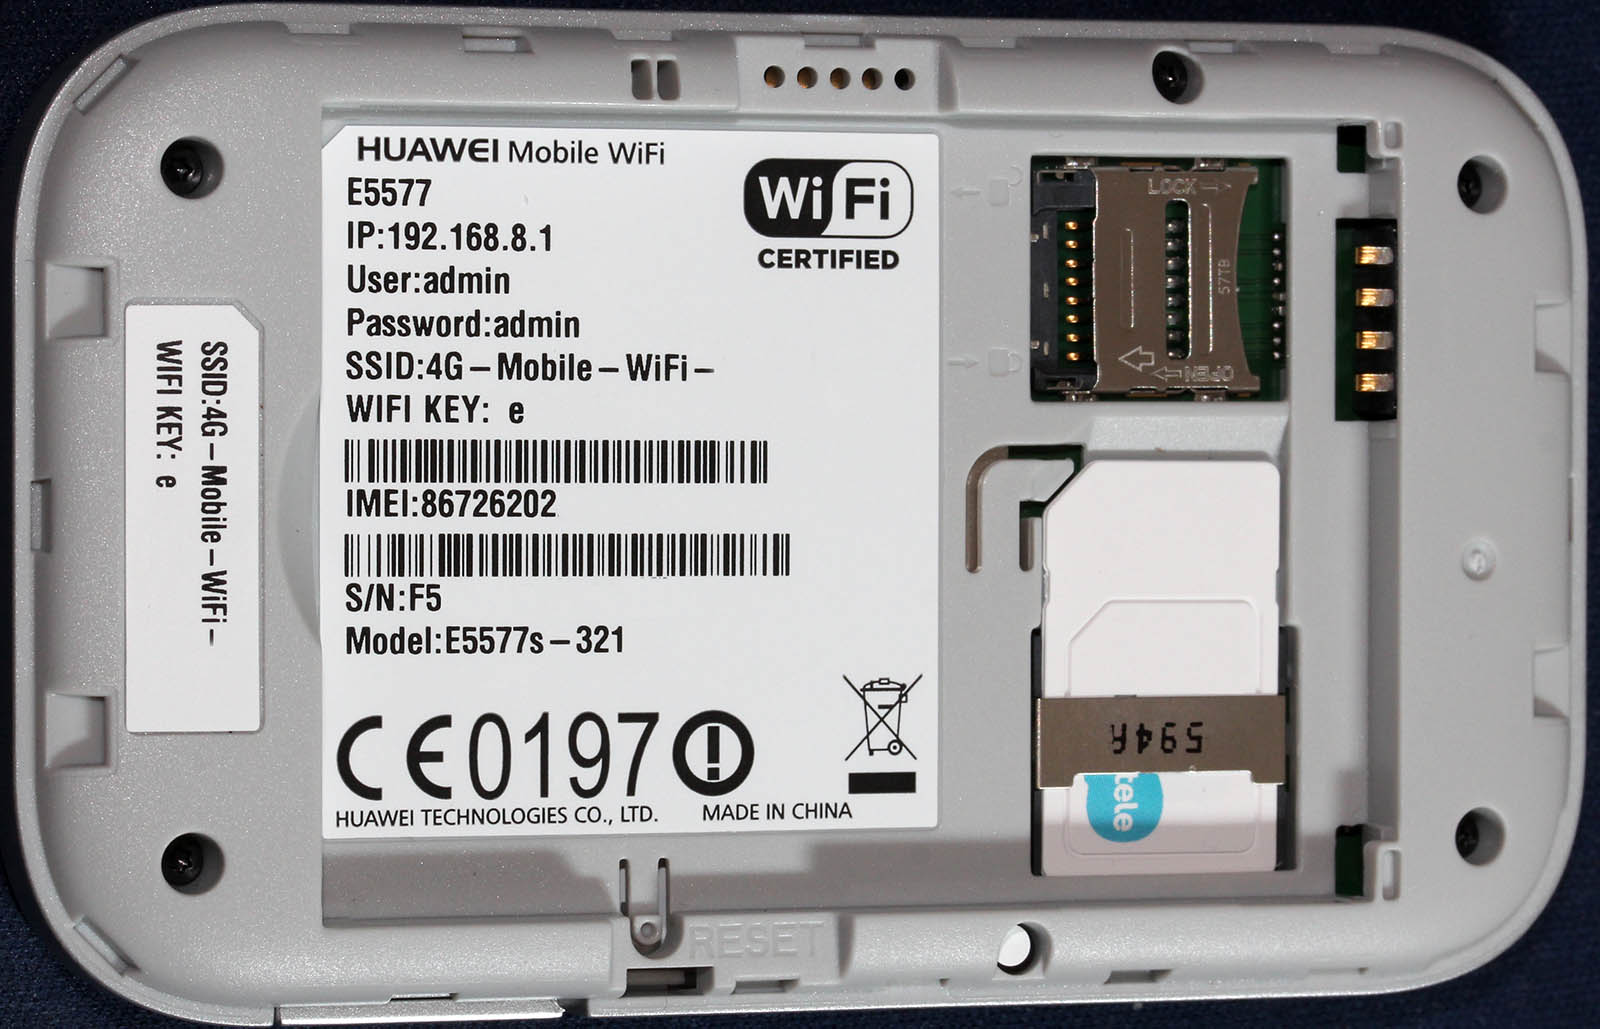 Huawei E5577 quick test - Hacker's ramblings